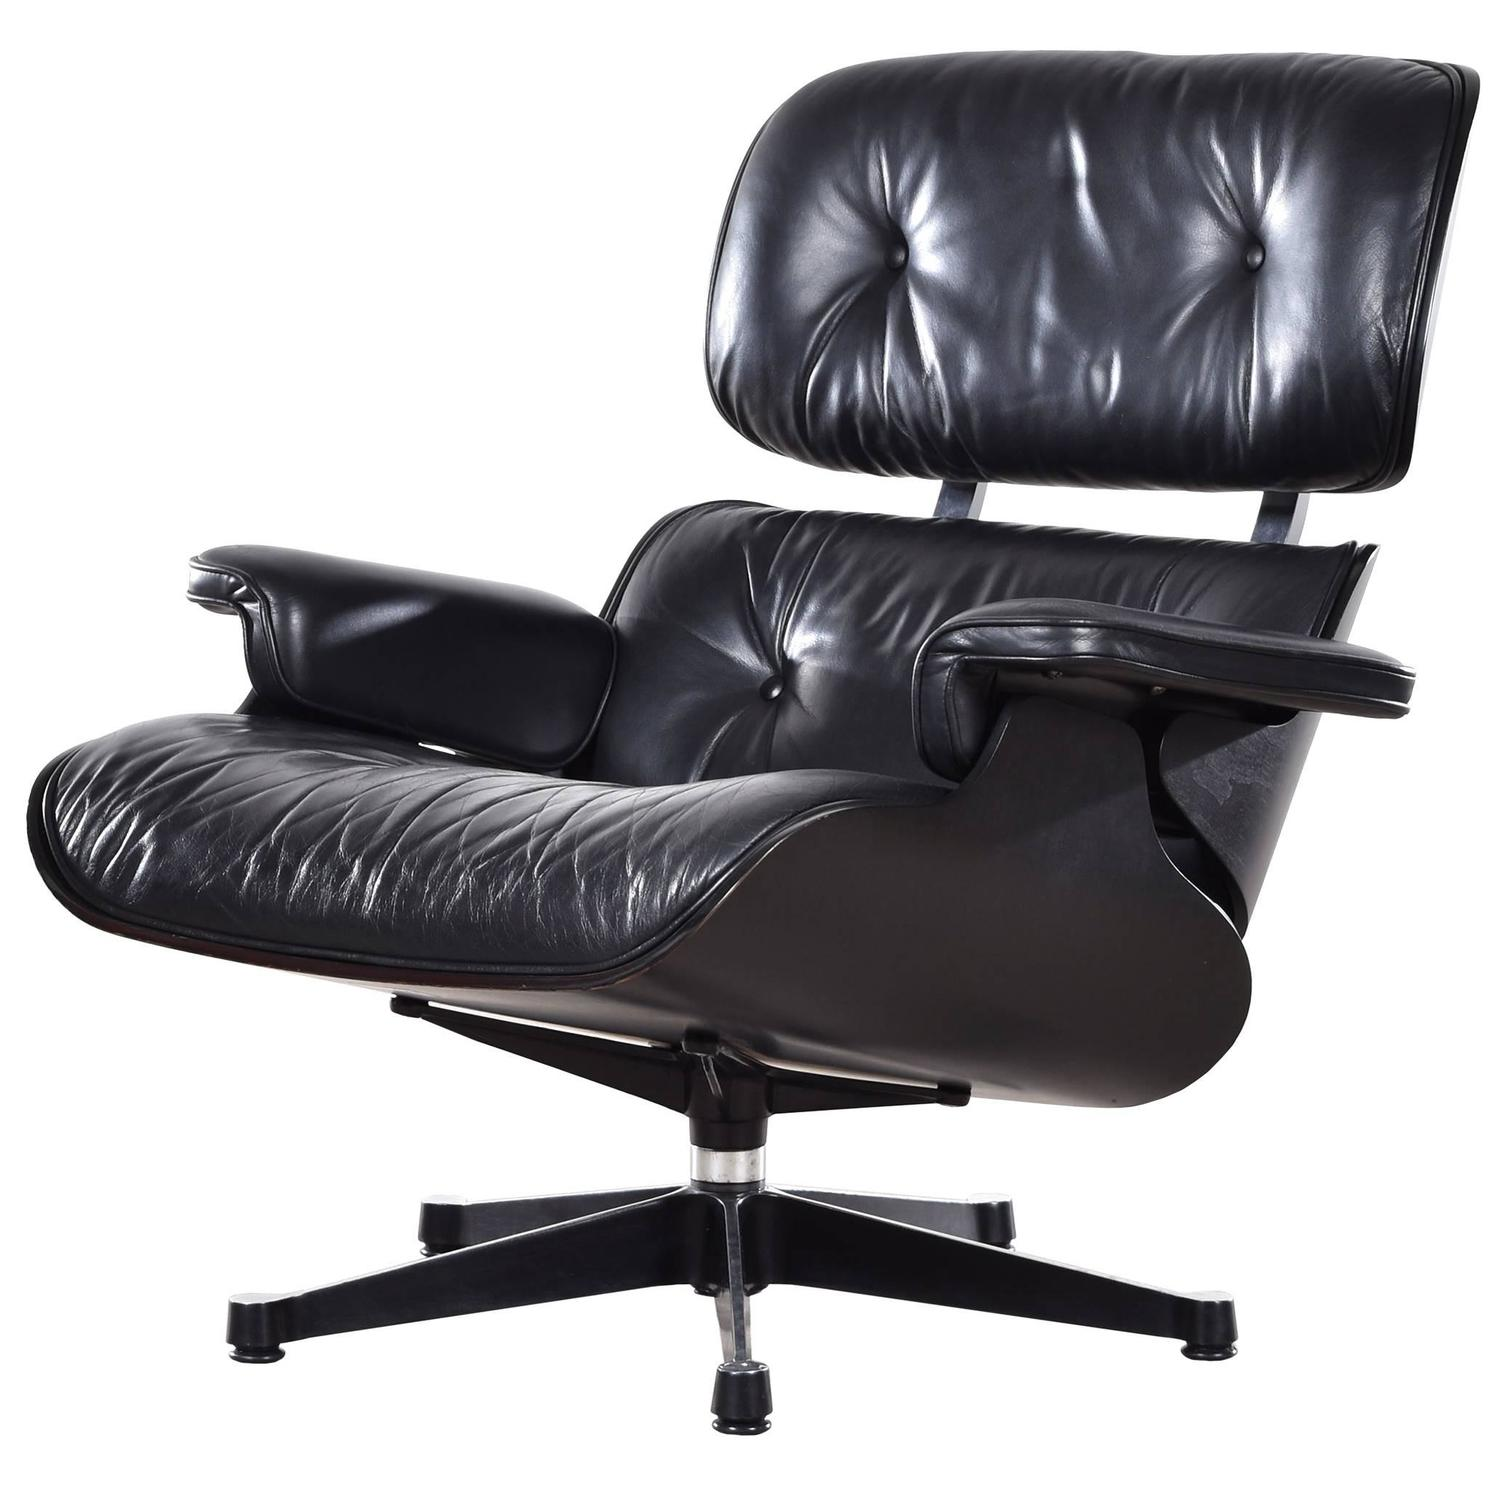 eames black lounge chair for vitra for sale at 1stdibs. Black Bedroom Furniture Sets. Home Design Ideas